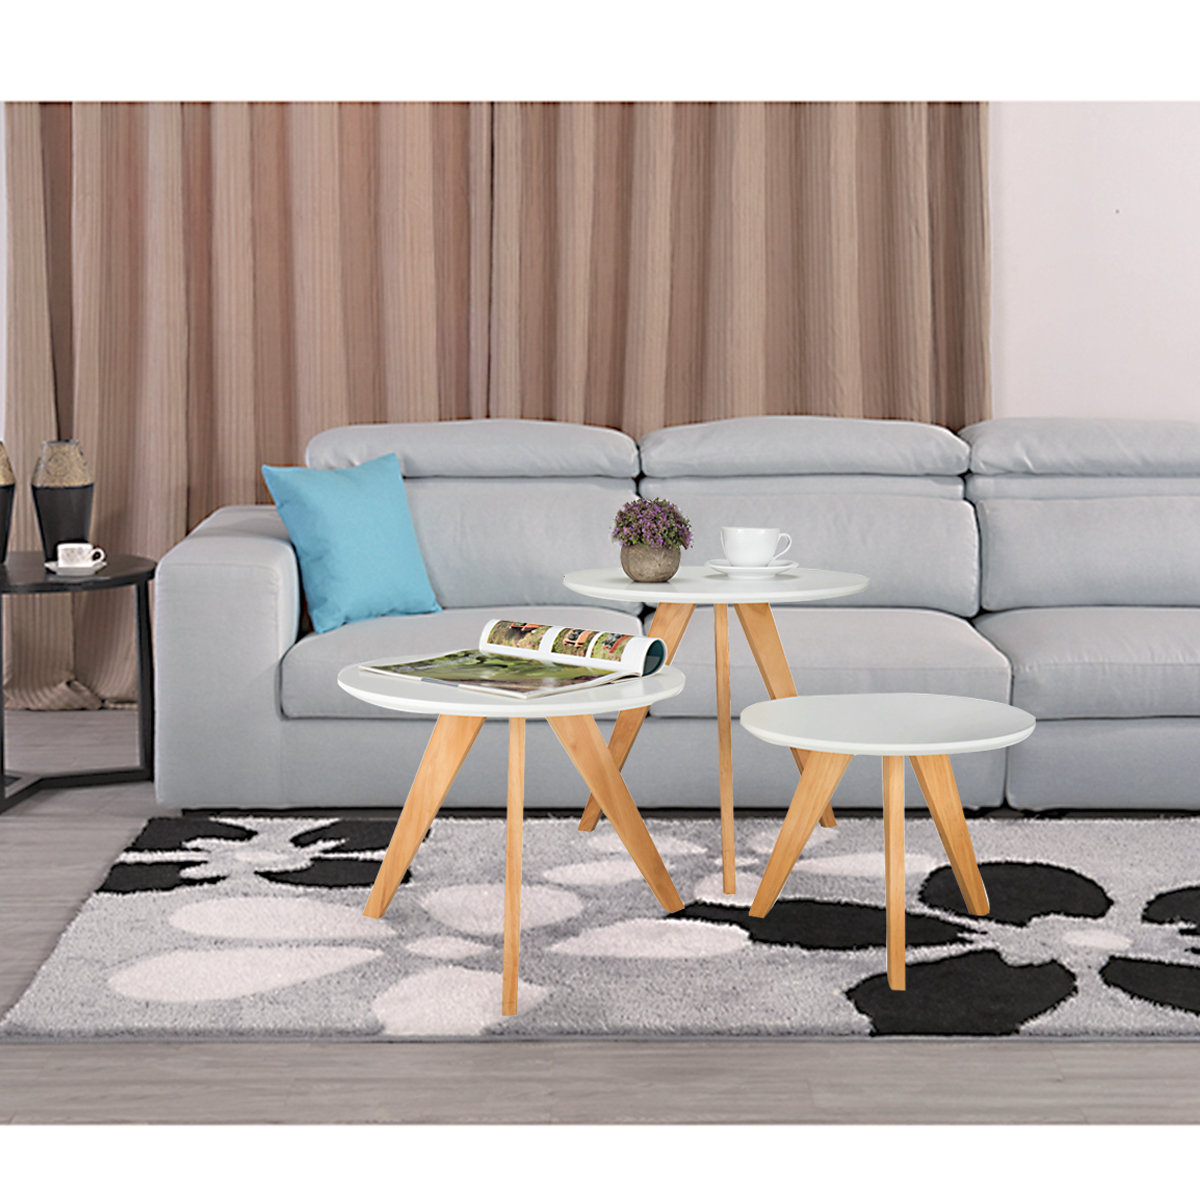 Details about new nest 3pcs round coffee modern furniture side tables matt white furniture uk